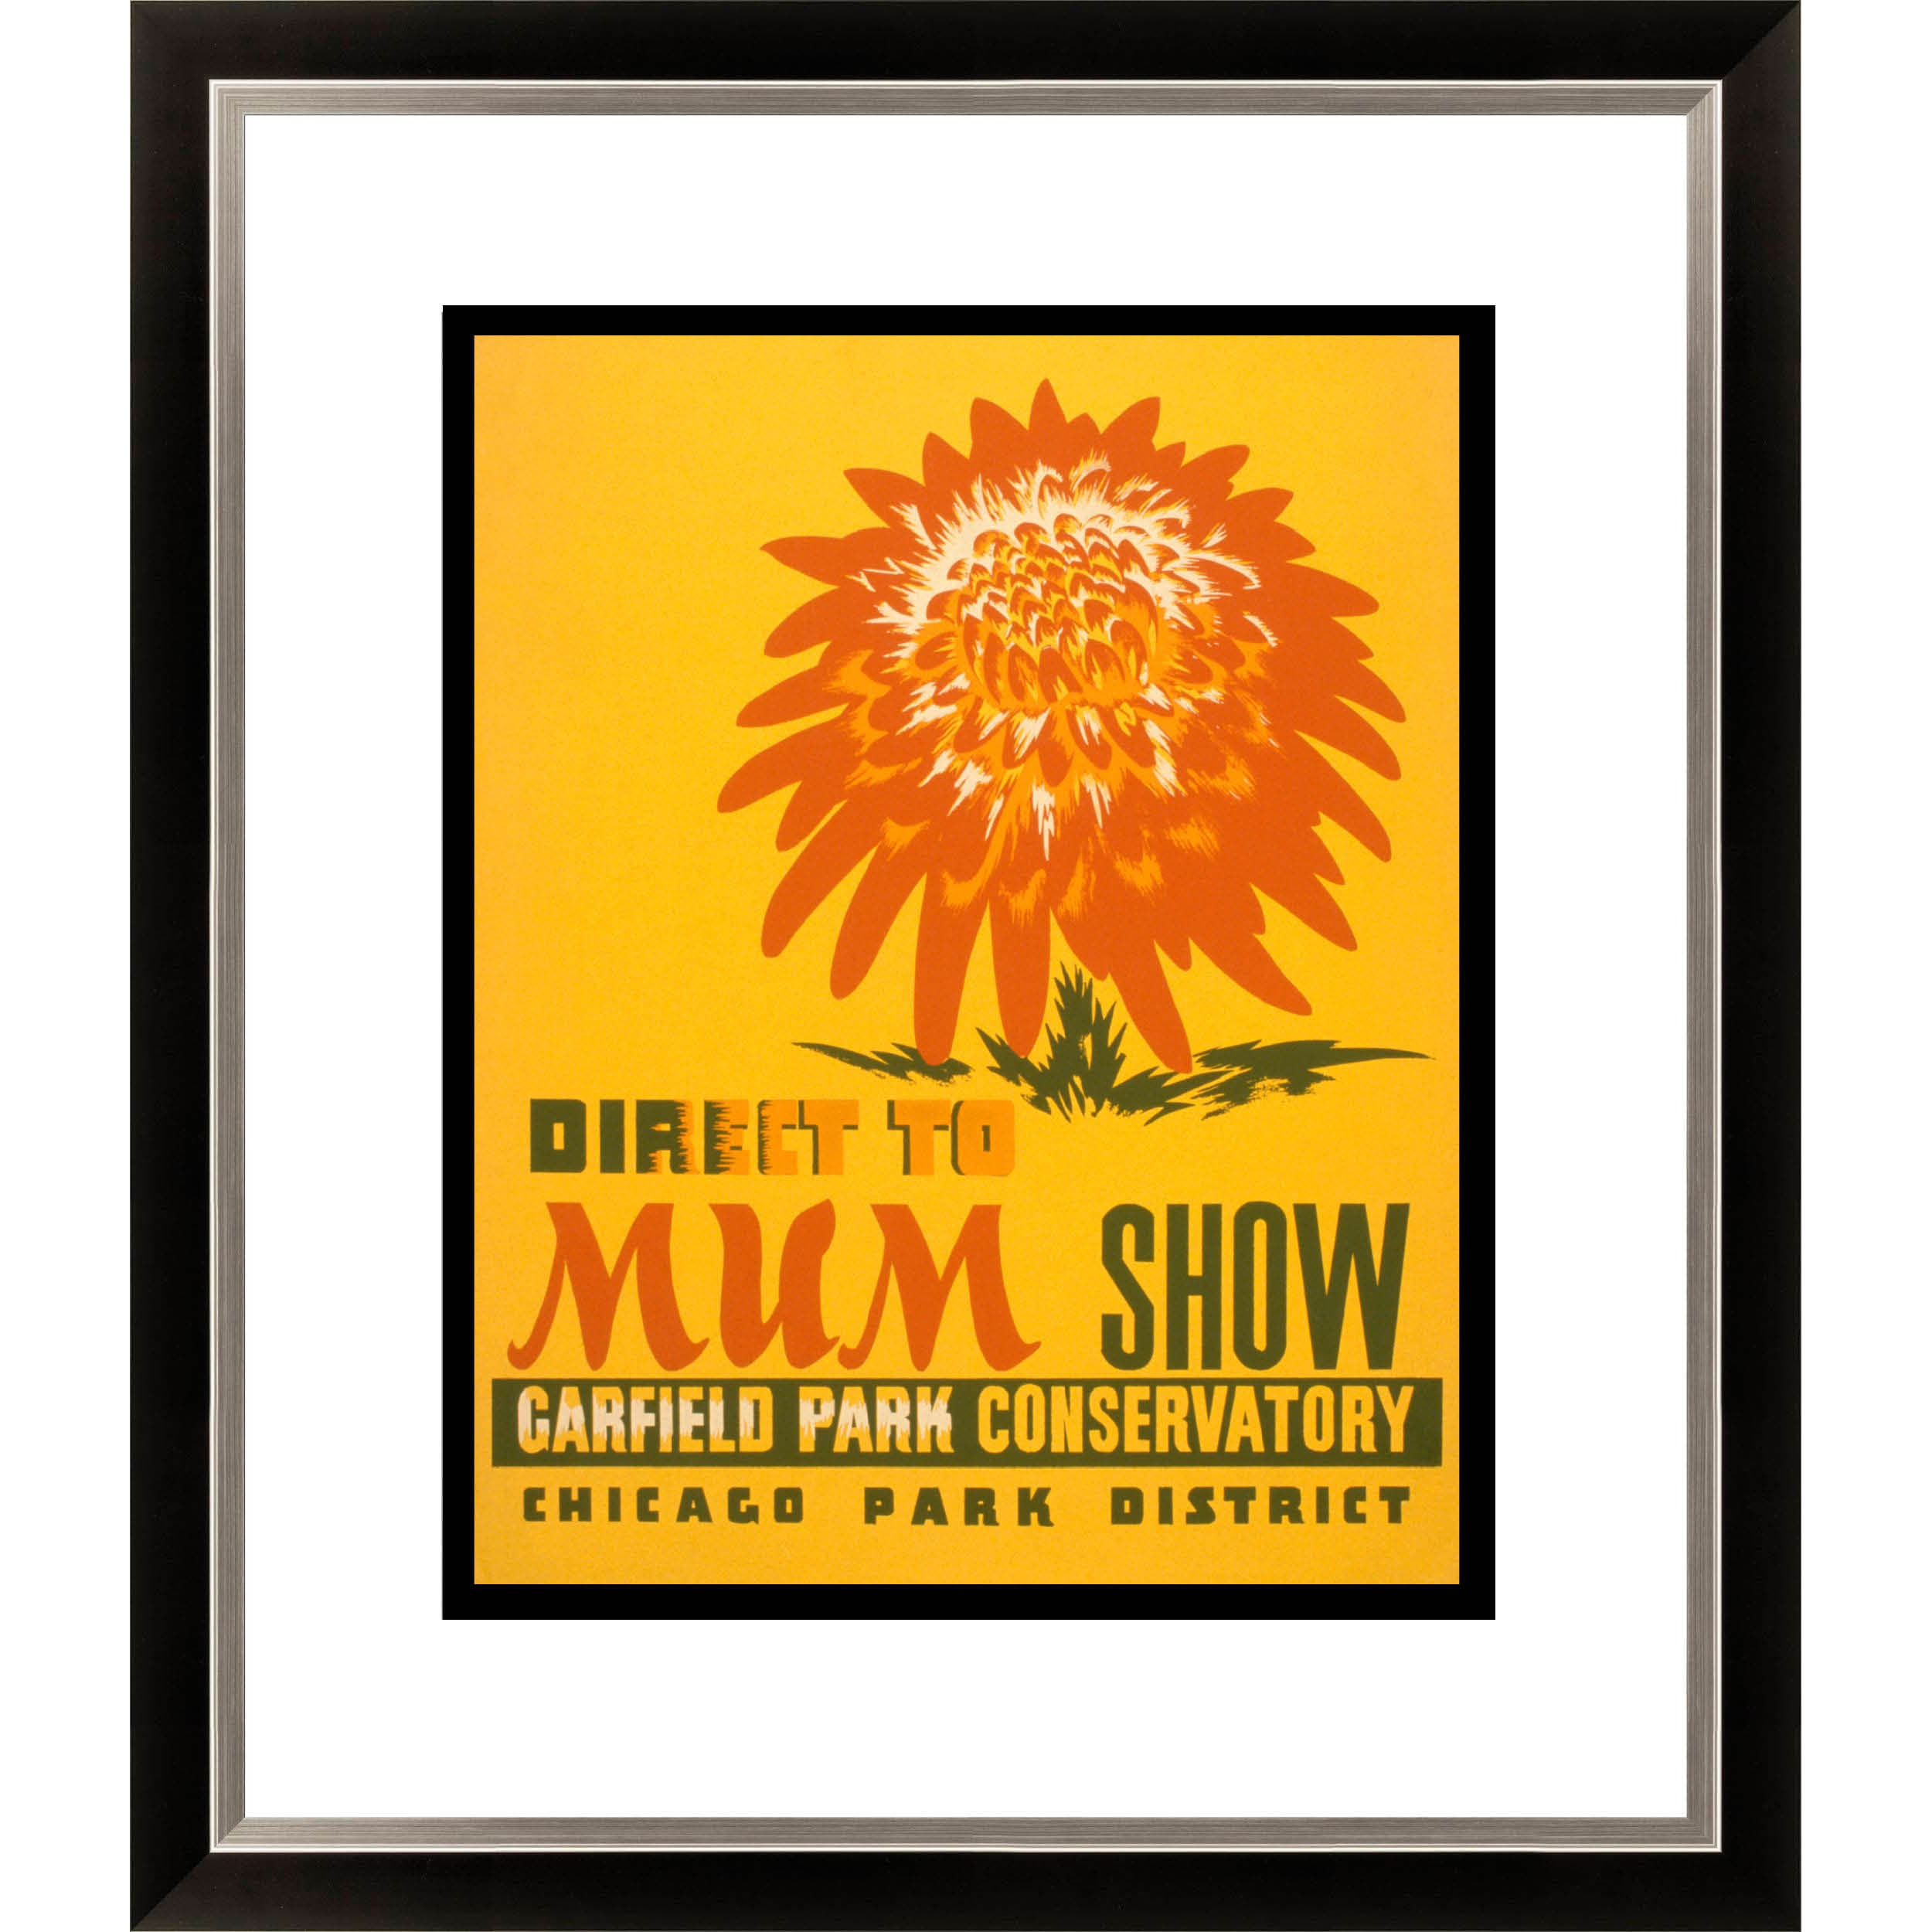 Gallery Direct Direct to Mum Show Garfield Park Conservatory Framed Limited Edition Giclee Art